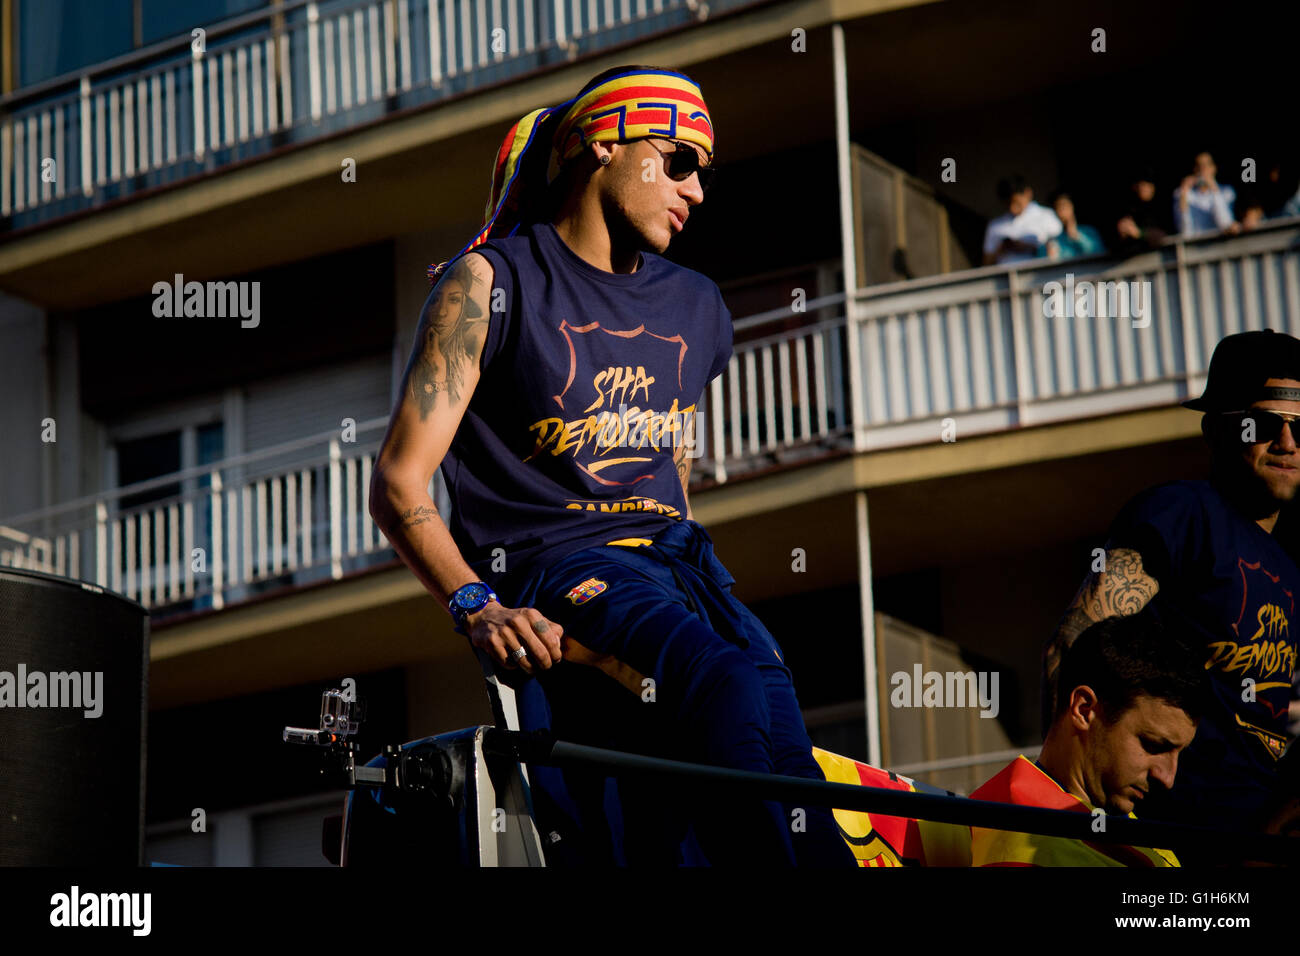 Barcelona, Spain. 15th May, 2016. FC Barcelona player Neymar is seen atop a open bus through the streets of Barcelona. - Stock Image